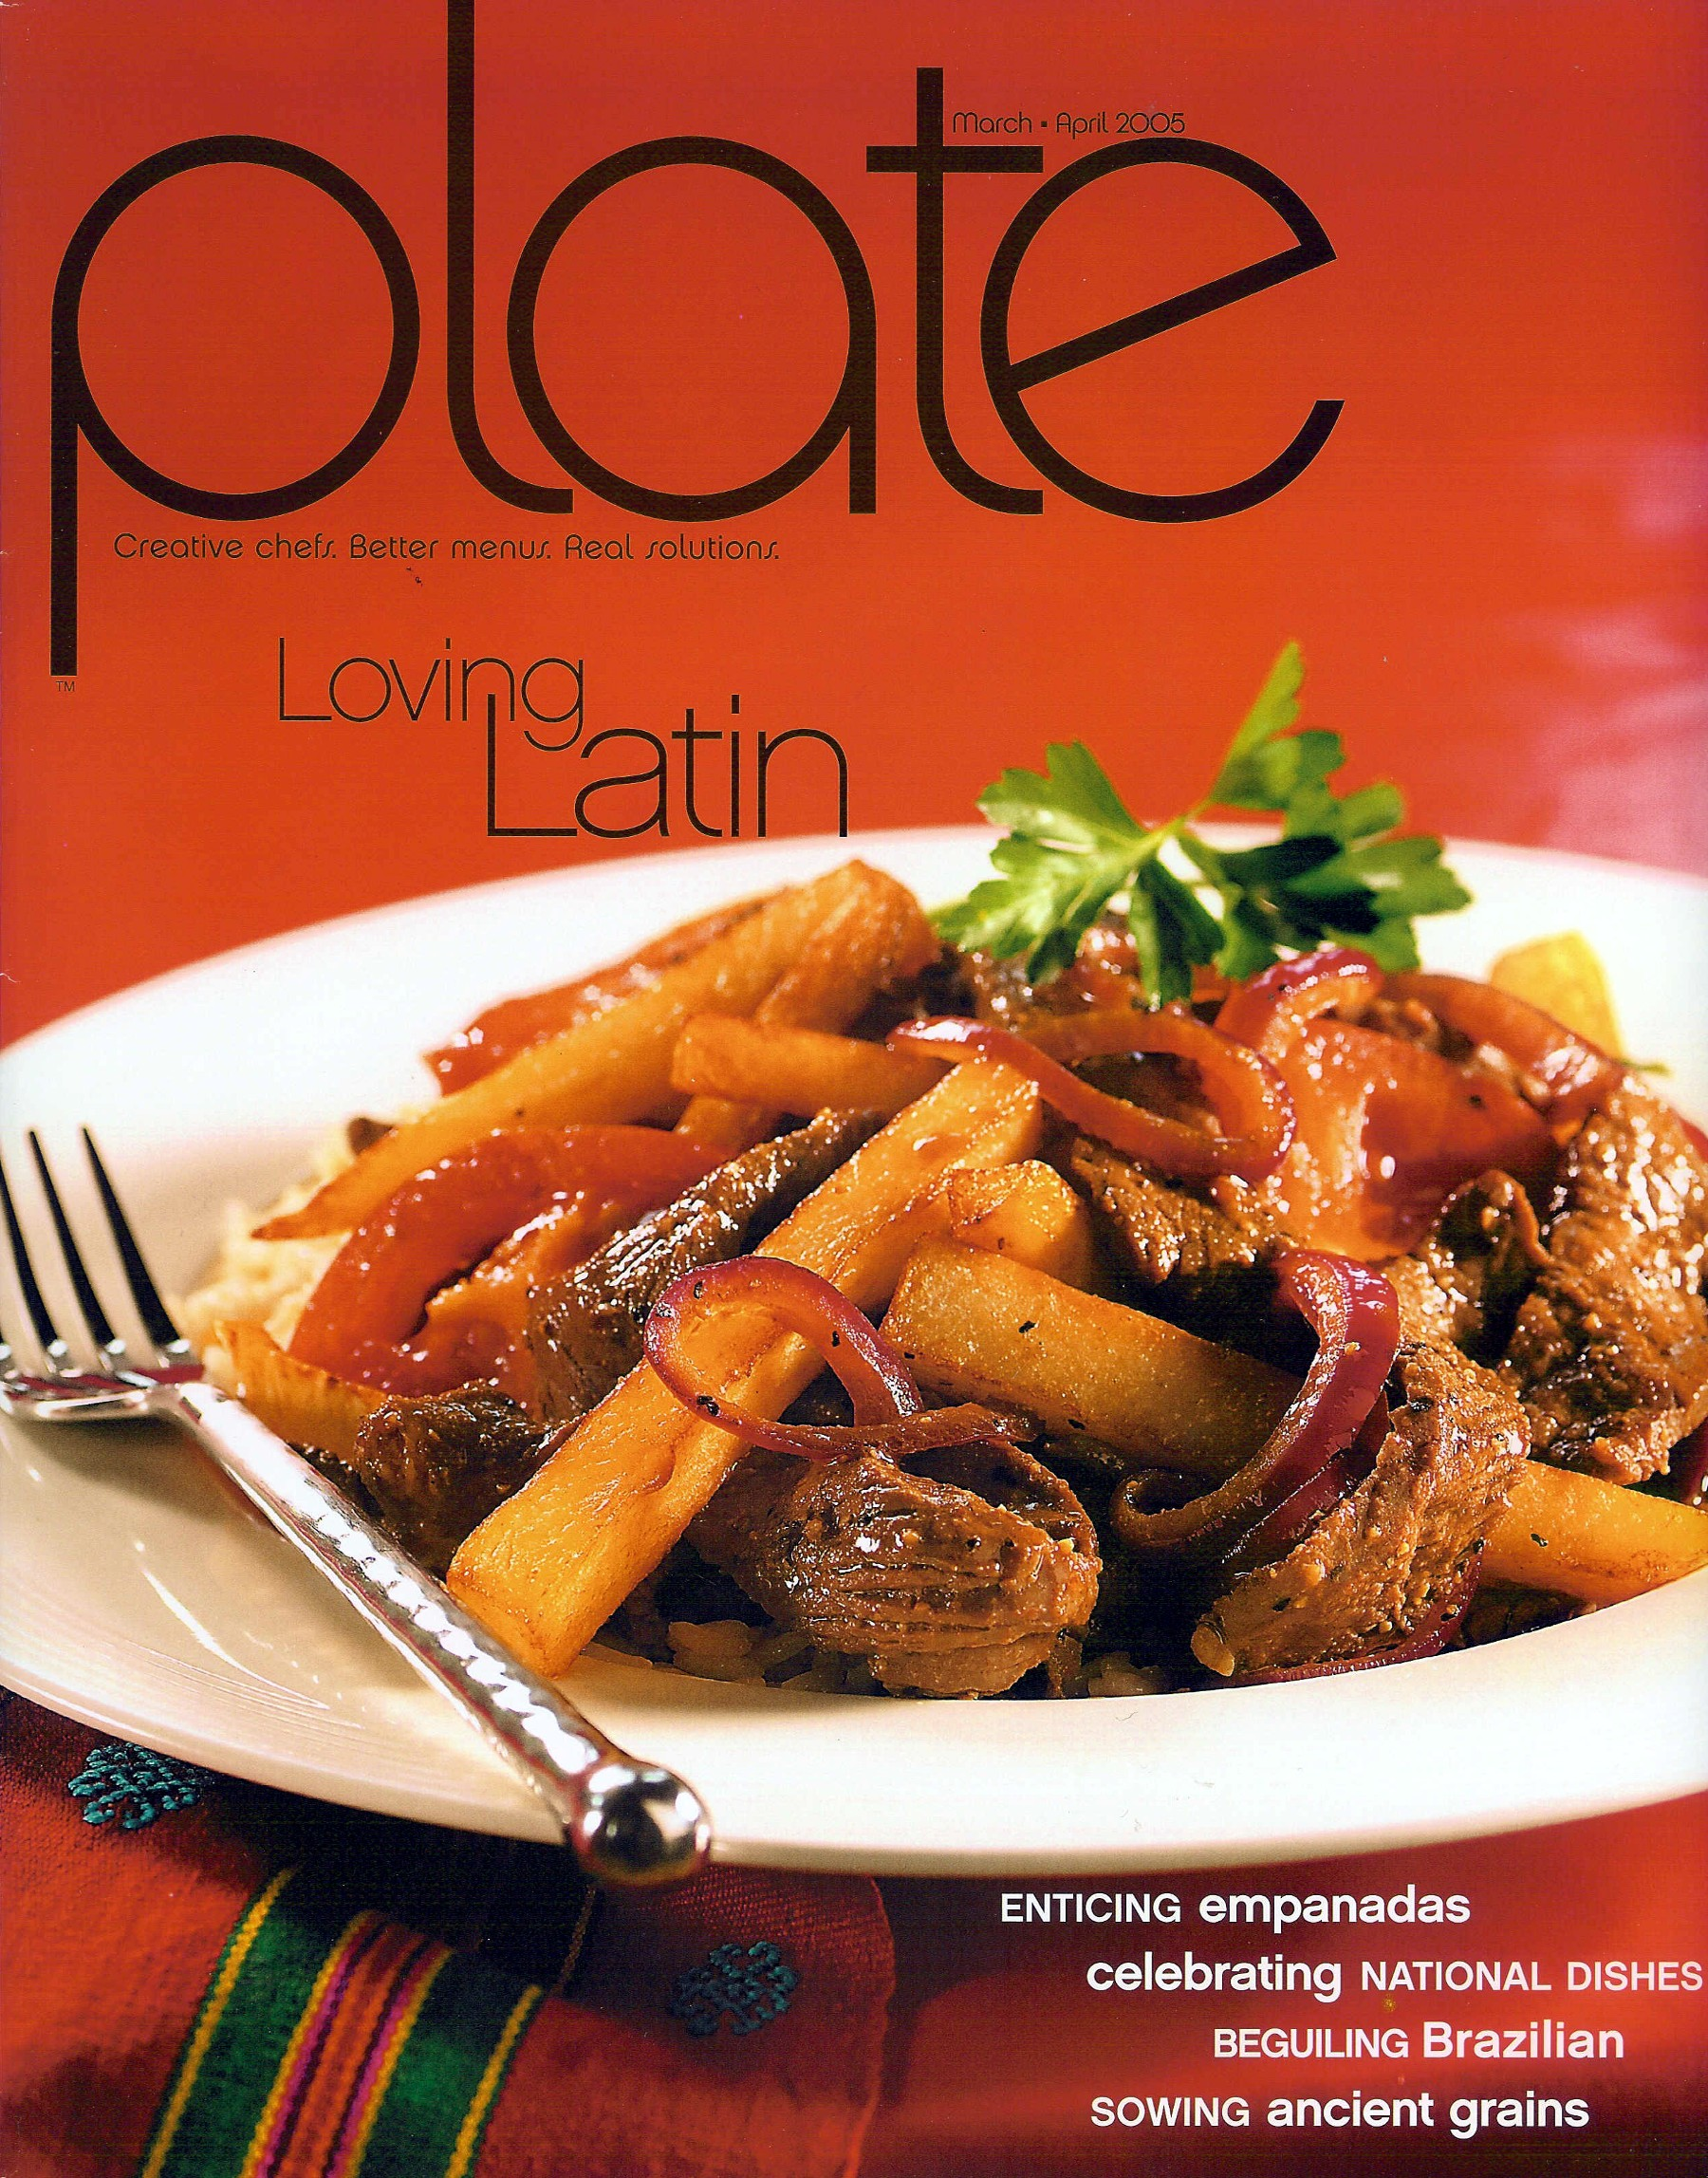 88 Plate Love Latin Cover